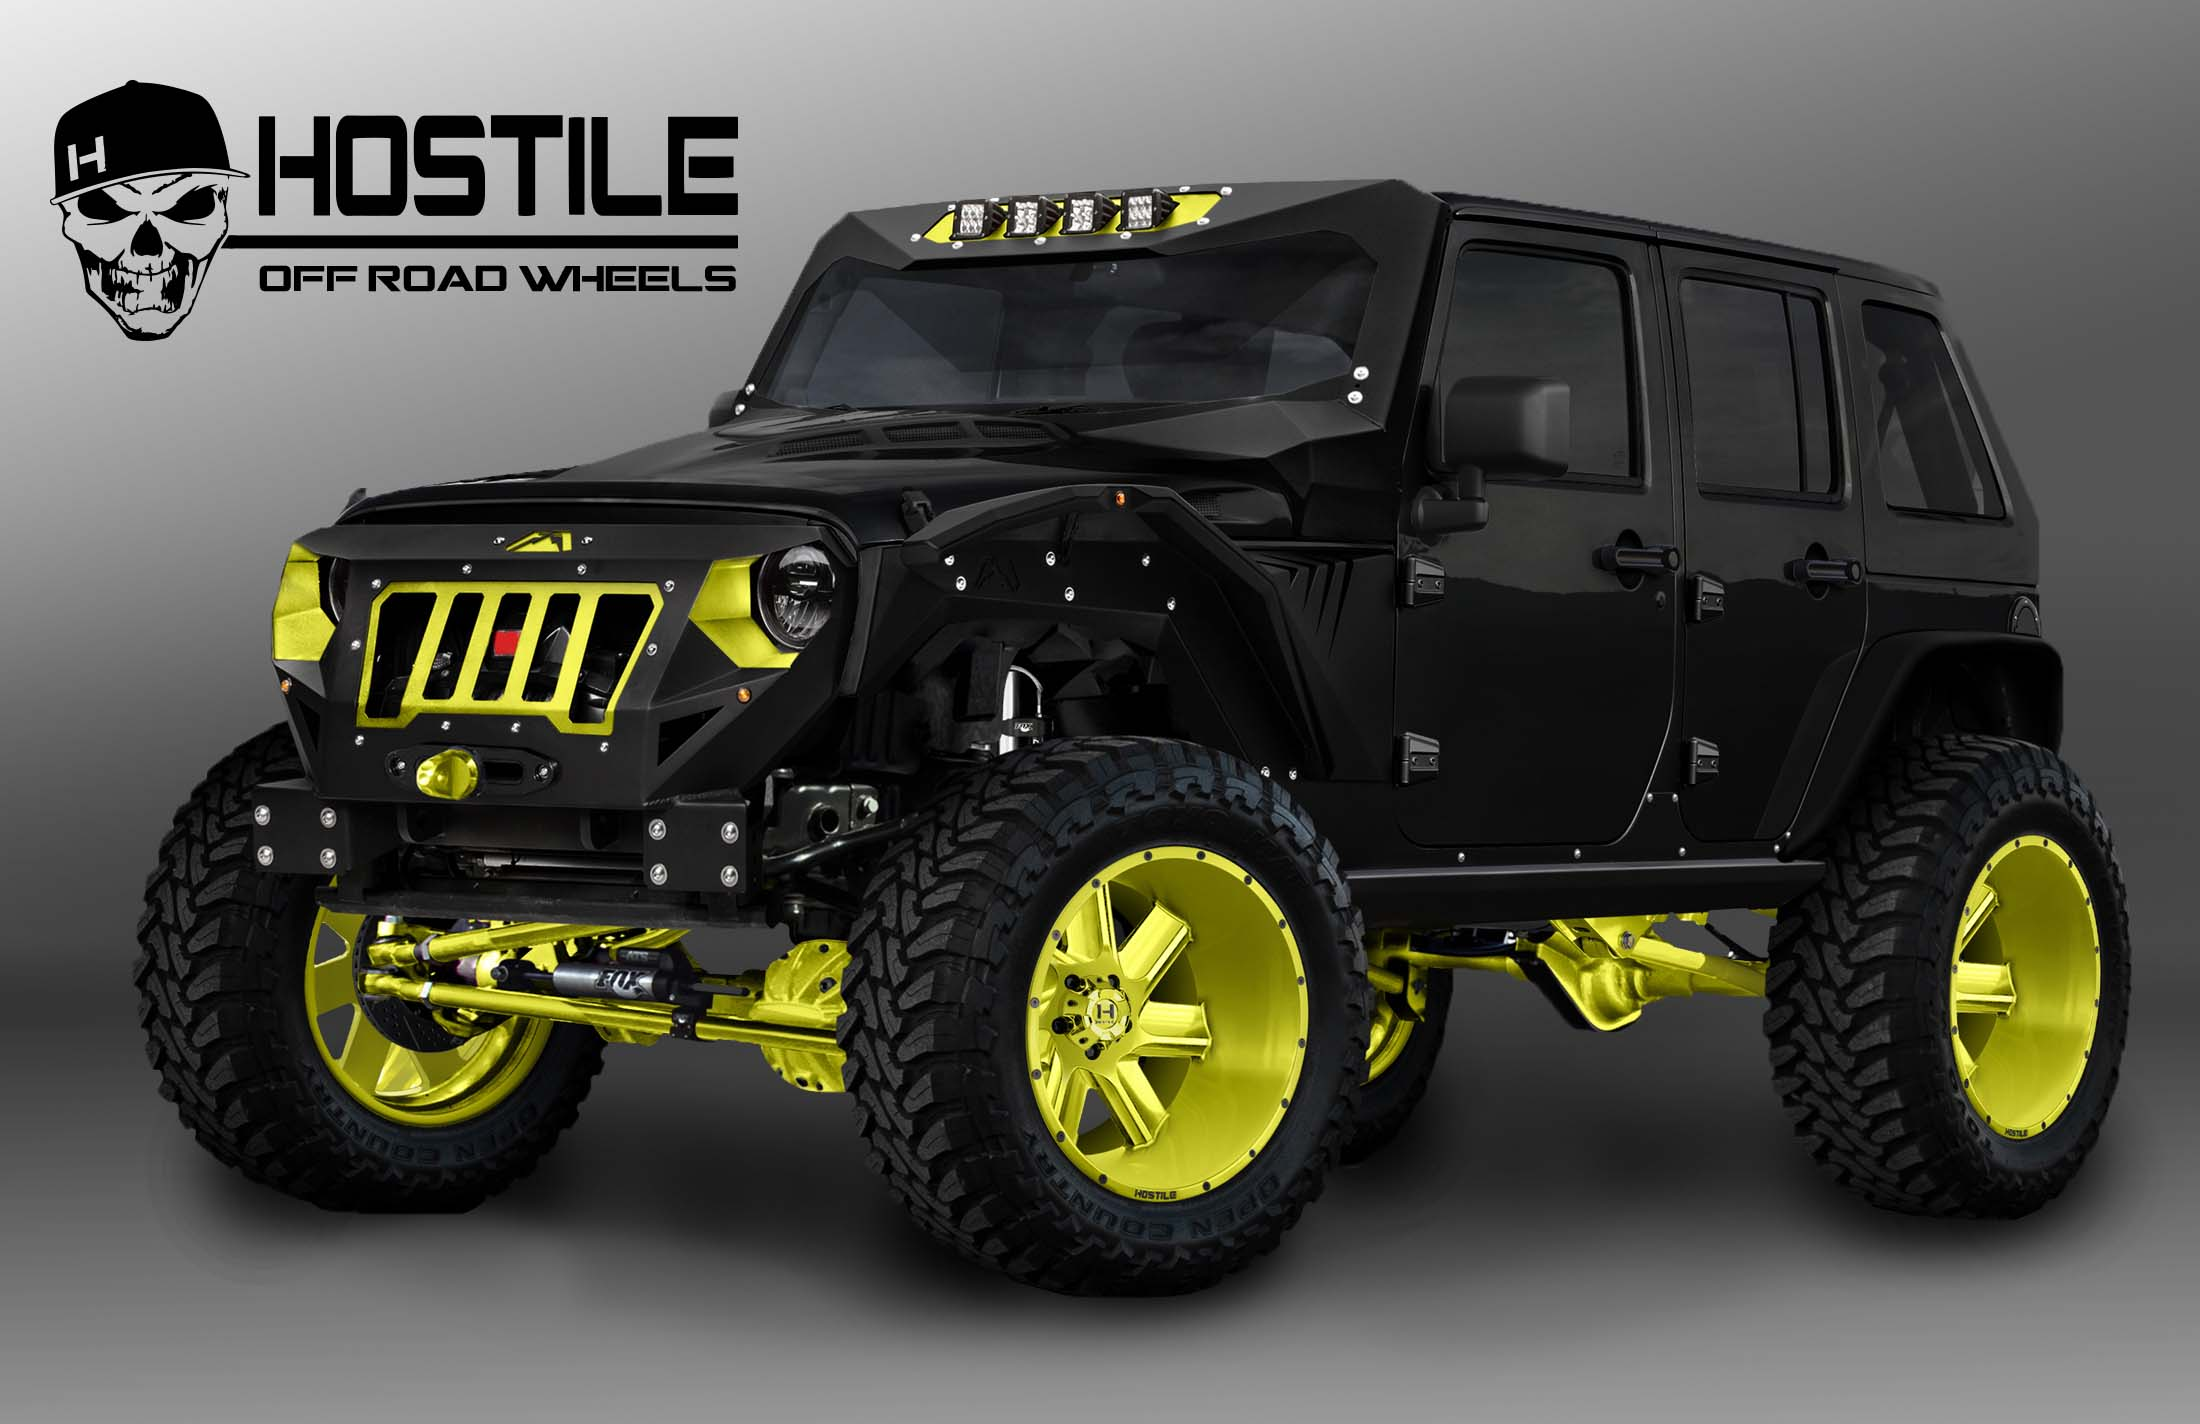 An extreme version of this 2016 Jeep Wrangler, shown with Hostile 20x12 Sprocket Wheels mounted on x15.50R20 MT Toyo tires, can be seen at SEMA Booth #47037 in the Hostile display.